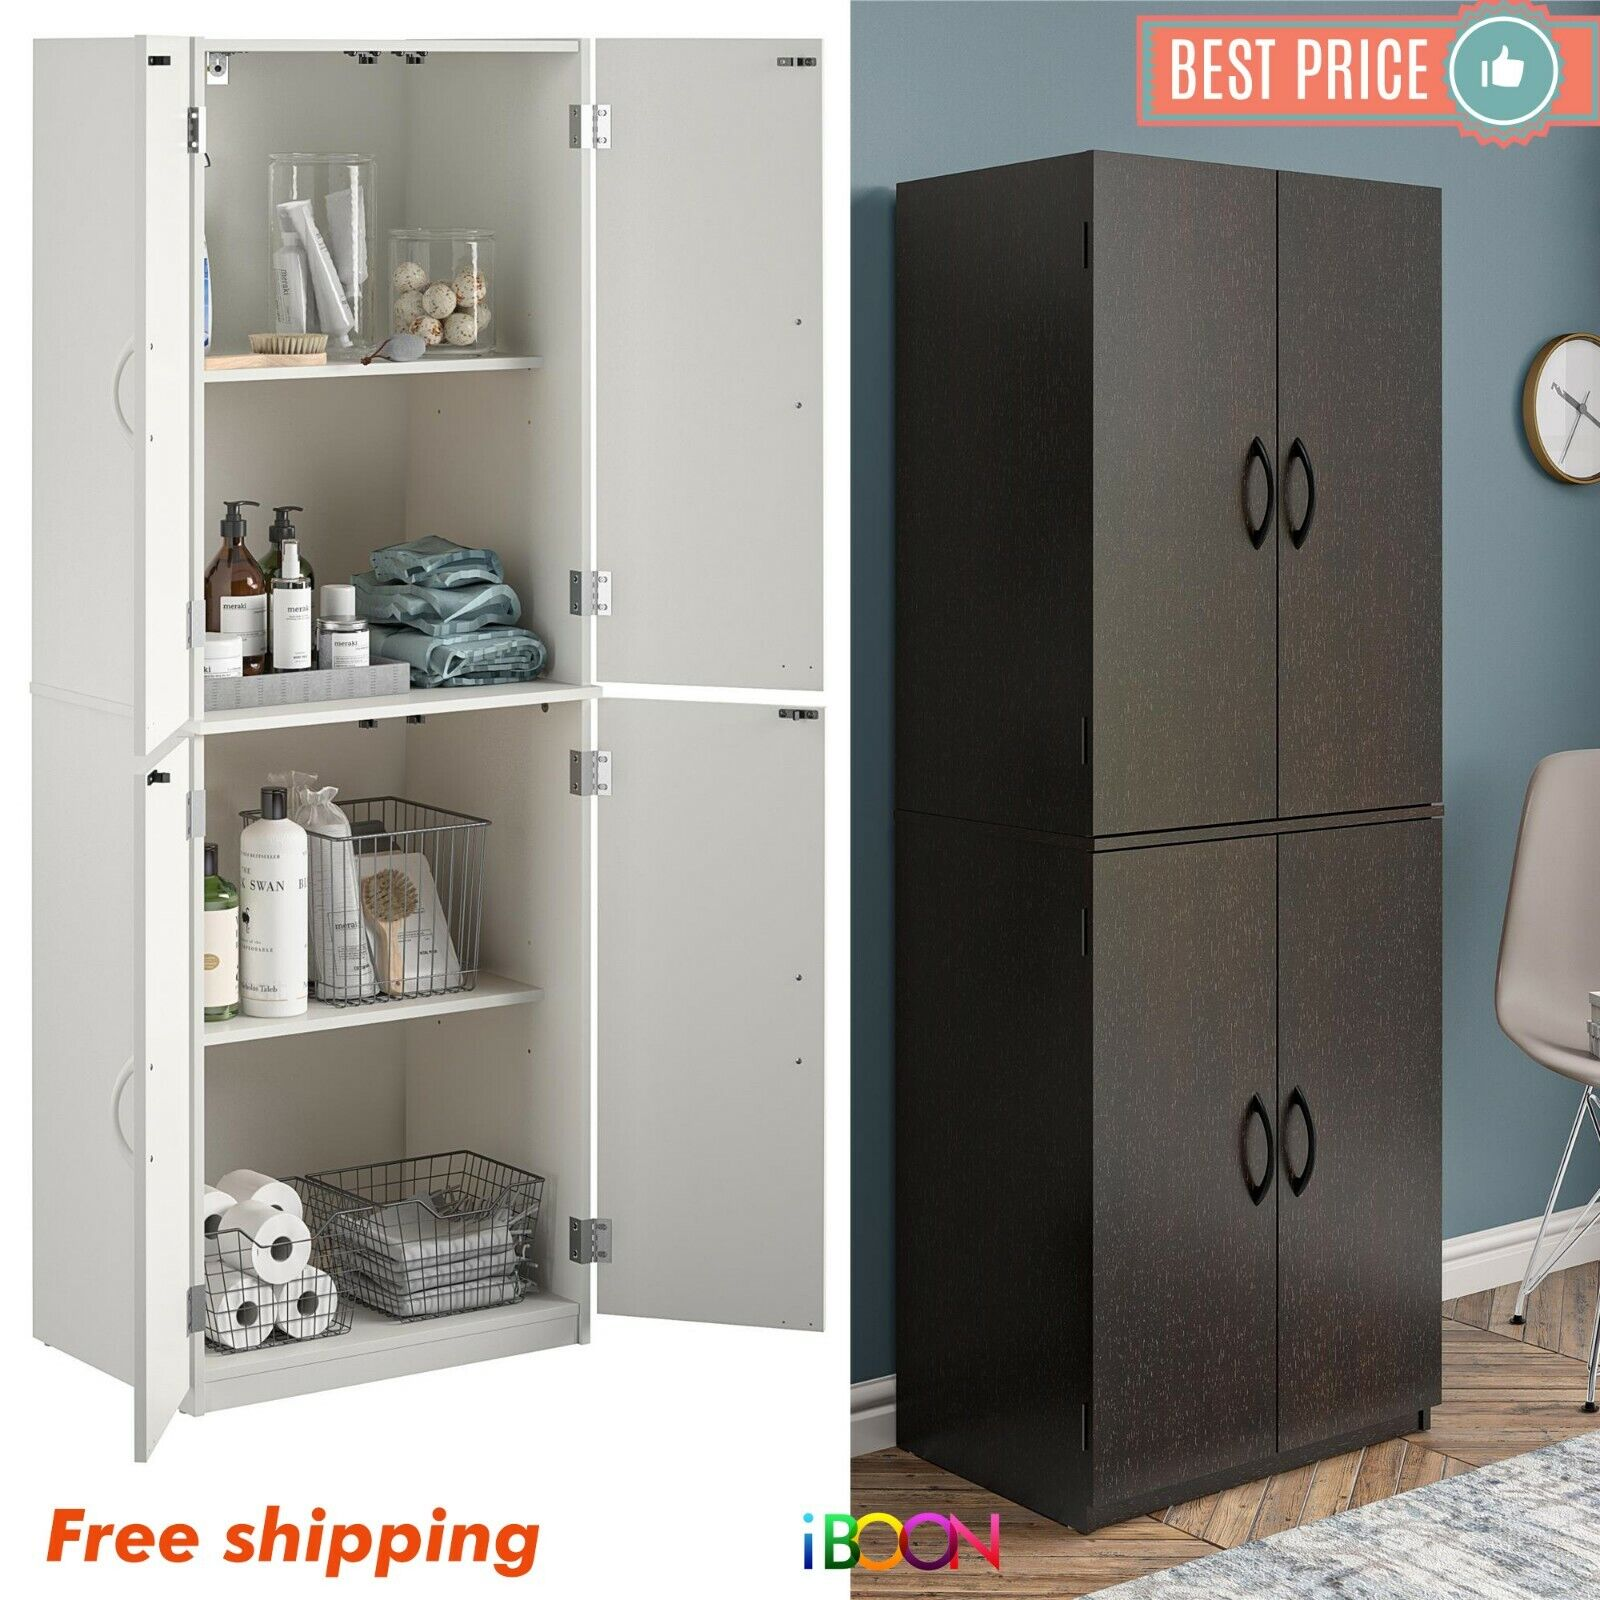 Kitchen Pantry Storage Cabinet Cupboard Organizer Wood Tall Shelves Furniture Cabinets Cupboards Home Garden Writup Net